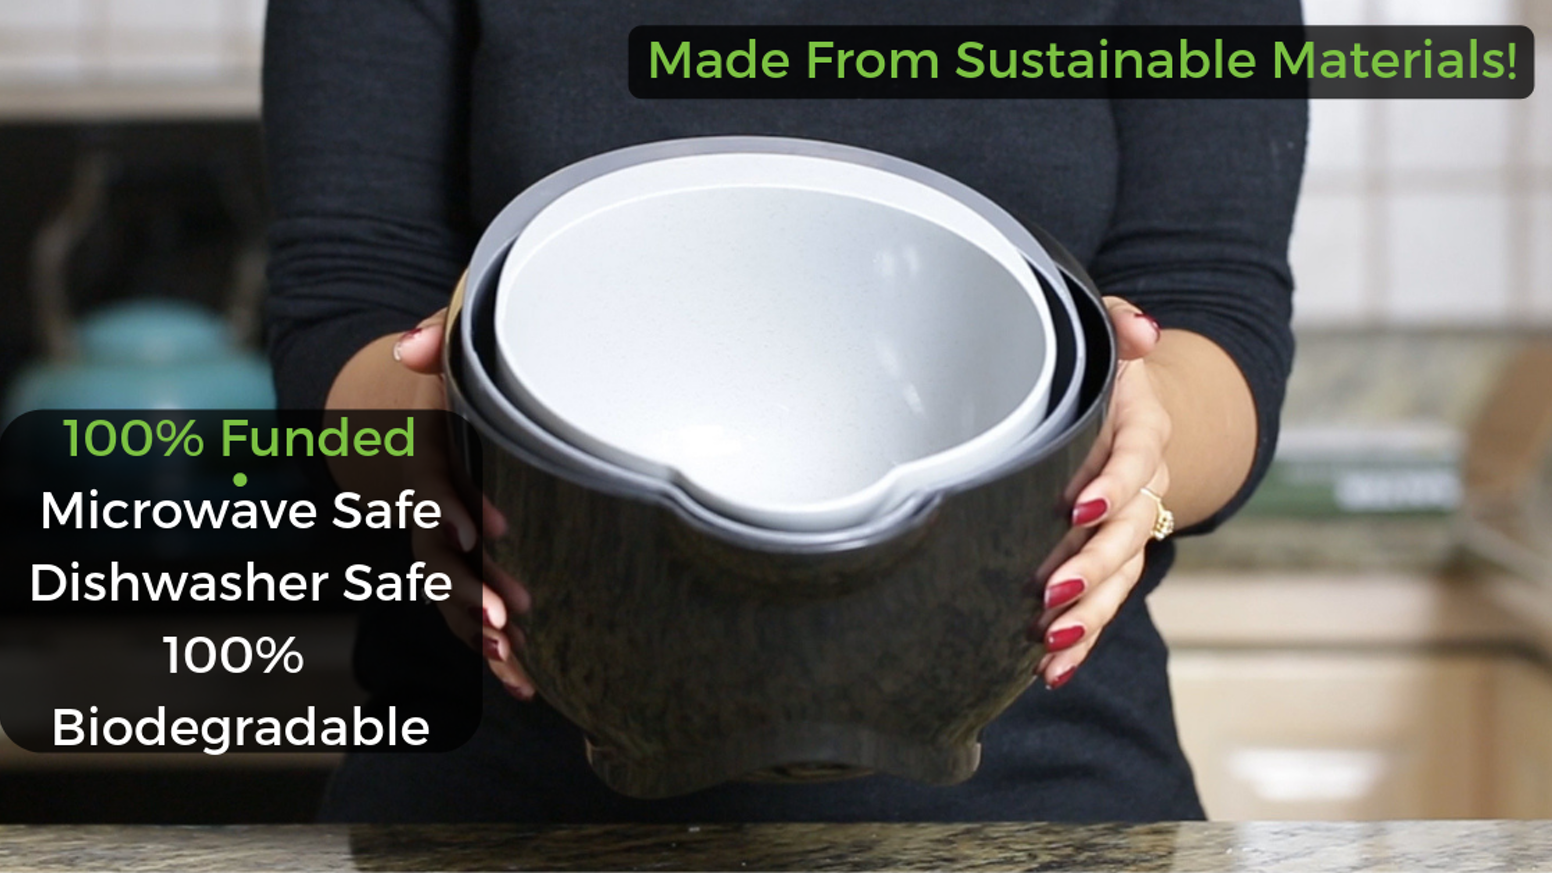 Made from sustainable materials. Dishwasher & microwave safe. Biodegrades into the Earth after you throw it away. You can now get a set of your own on our website. Click the link below to check it out!